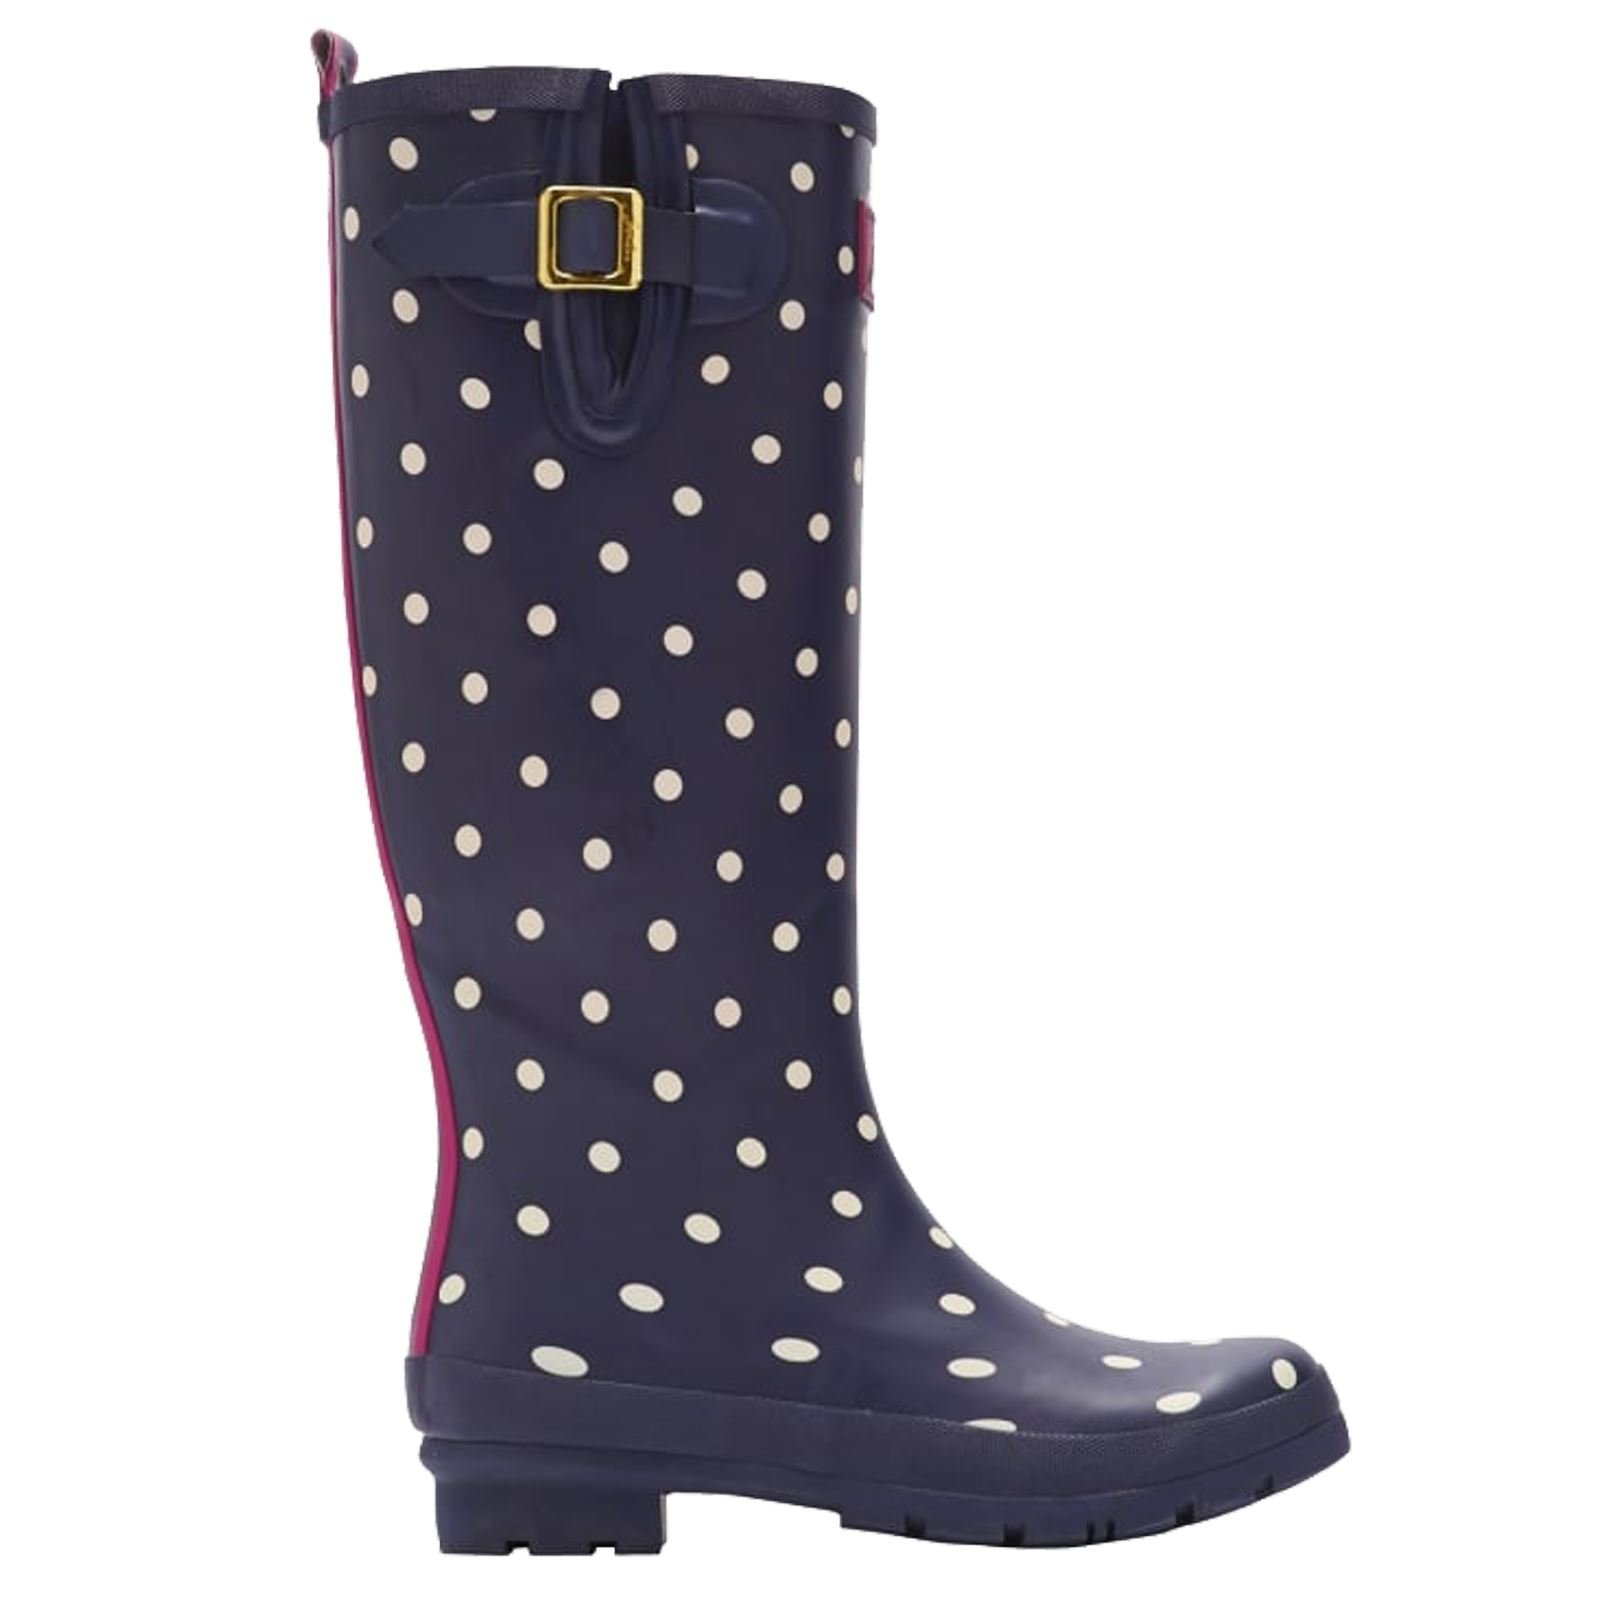 Joules Womens Polka Dot Tall Blue Rubber Boots 6 US